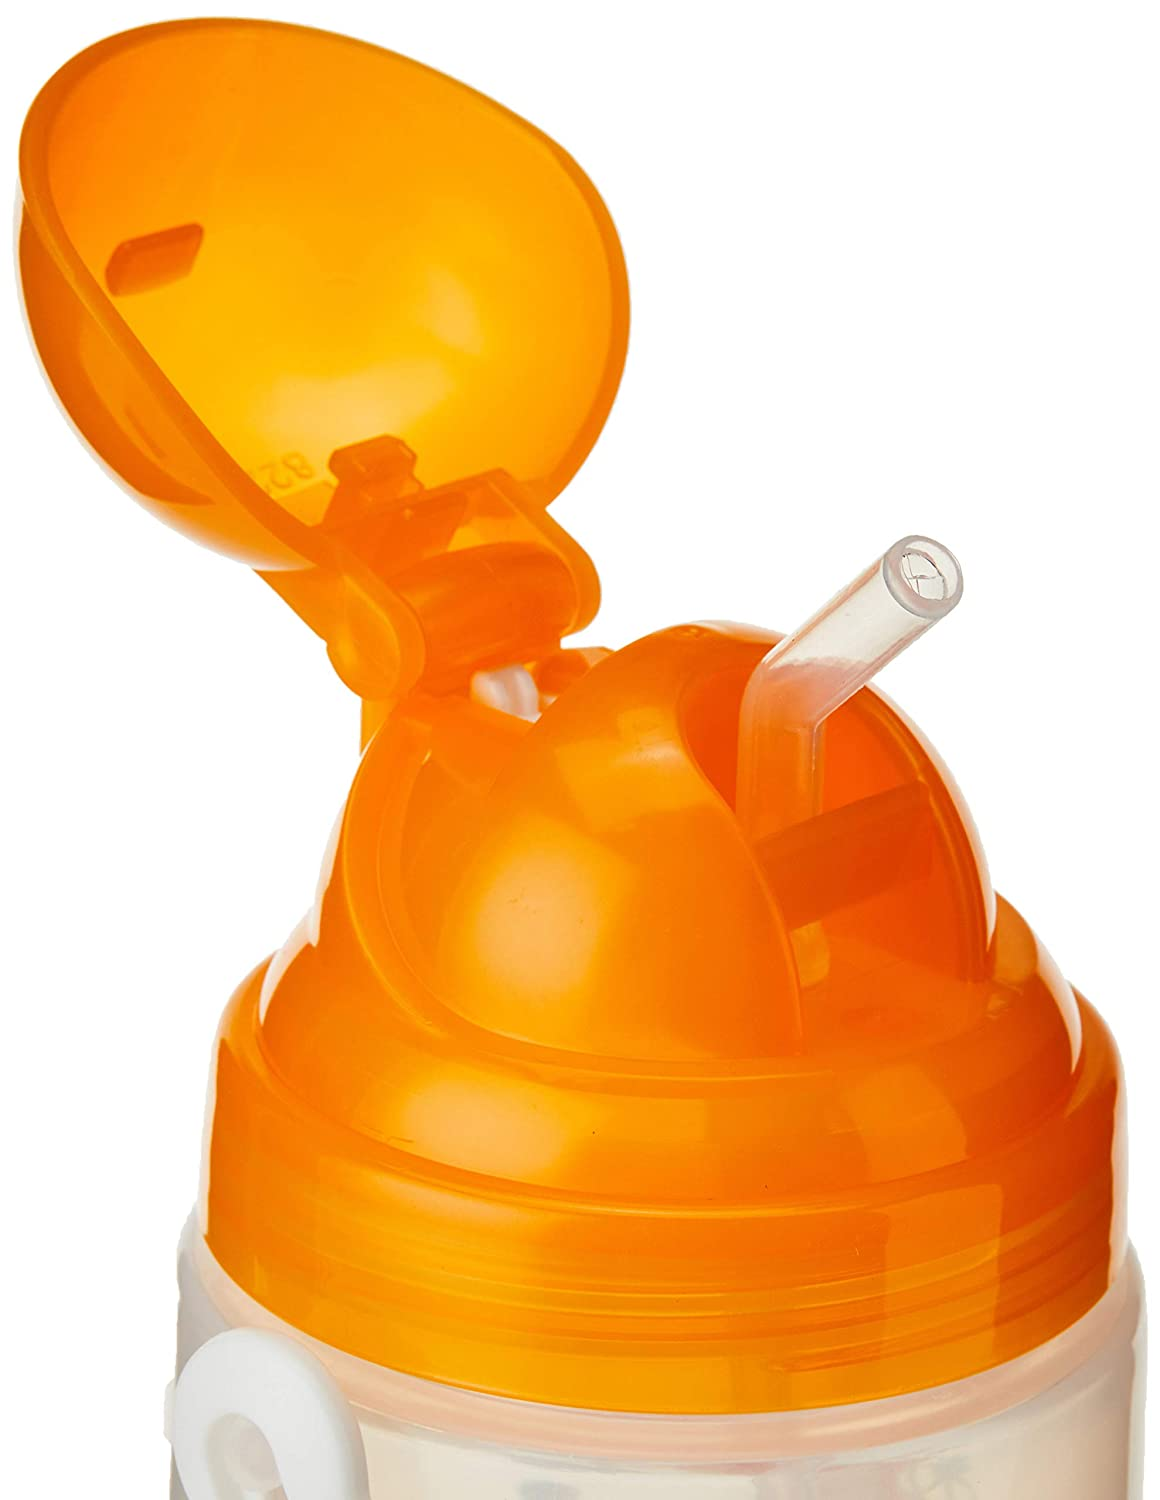 BPA Free Orange 22oz Baby Training Sippy Cup Pop Up Lid Auto Straw For Toddler